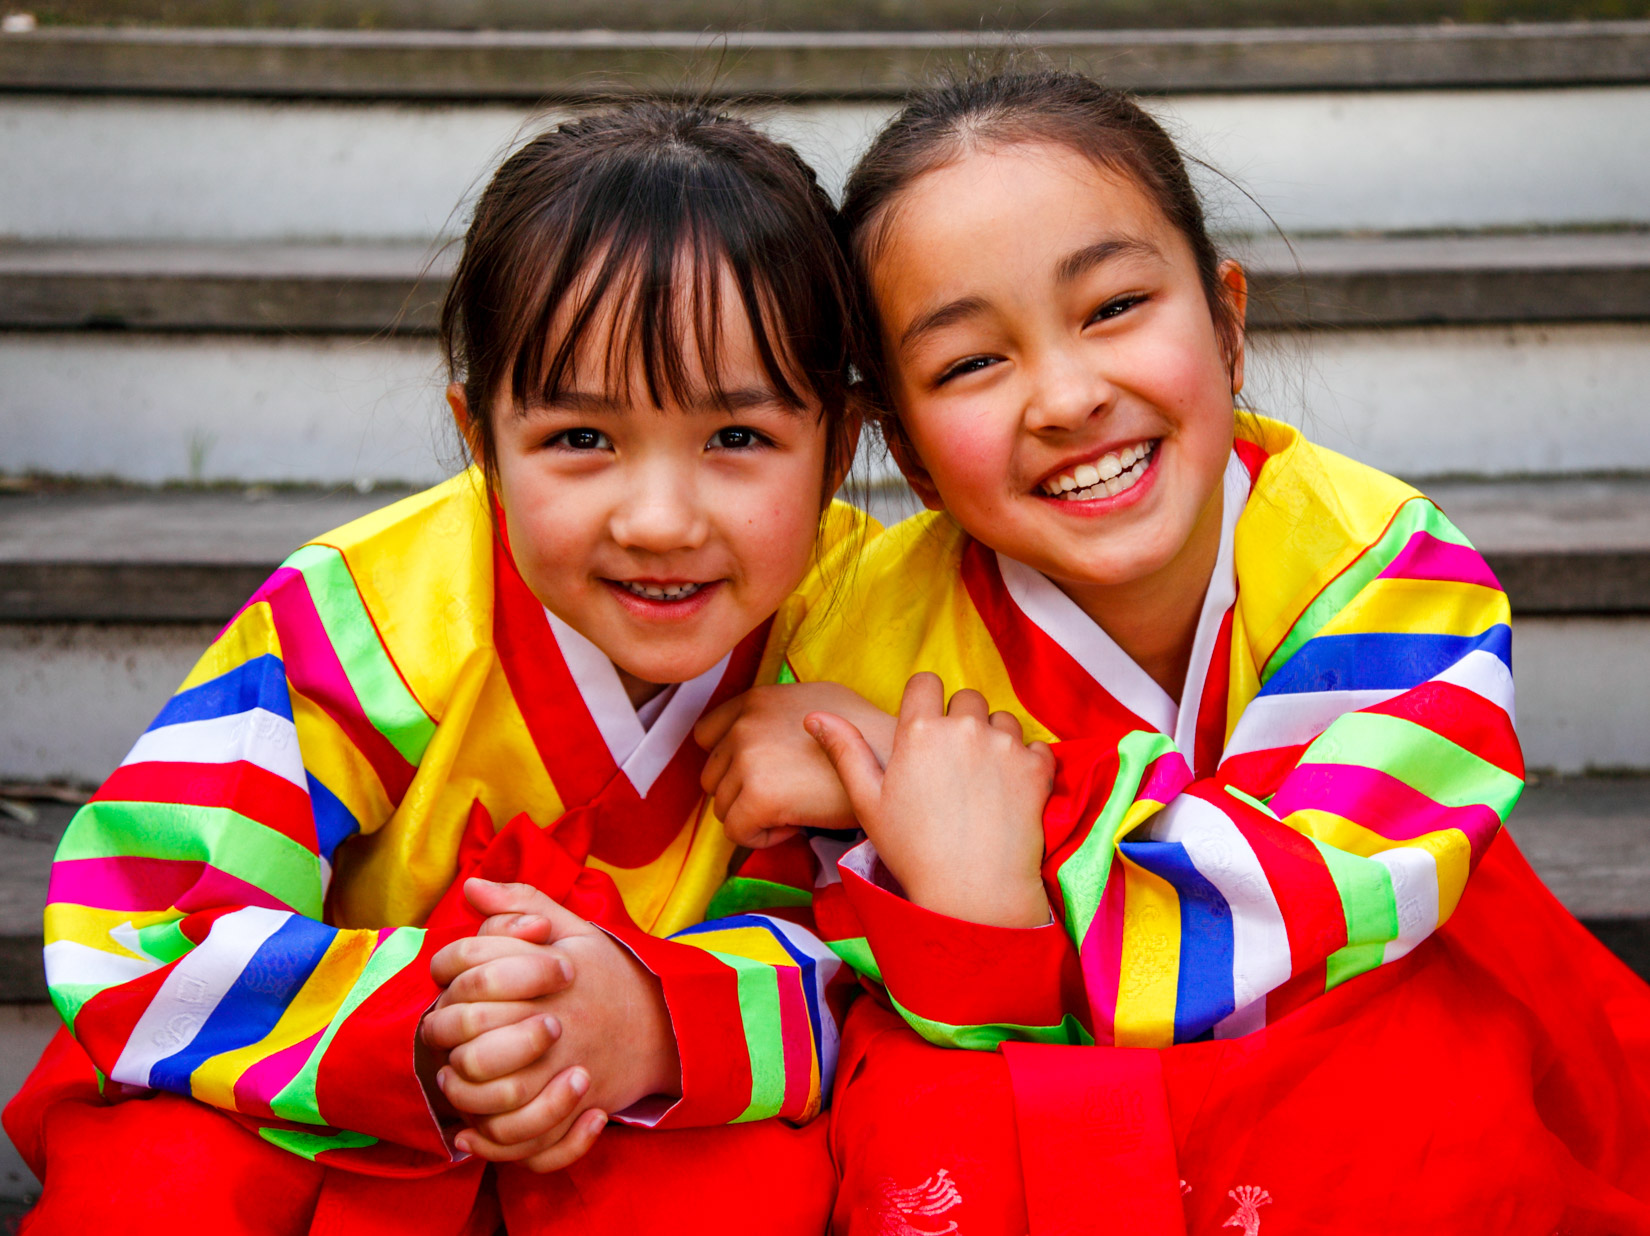 Two young girls in colorful hanboks smile brightly